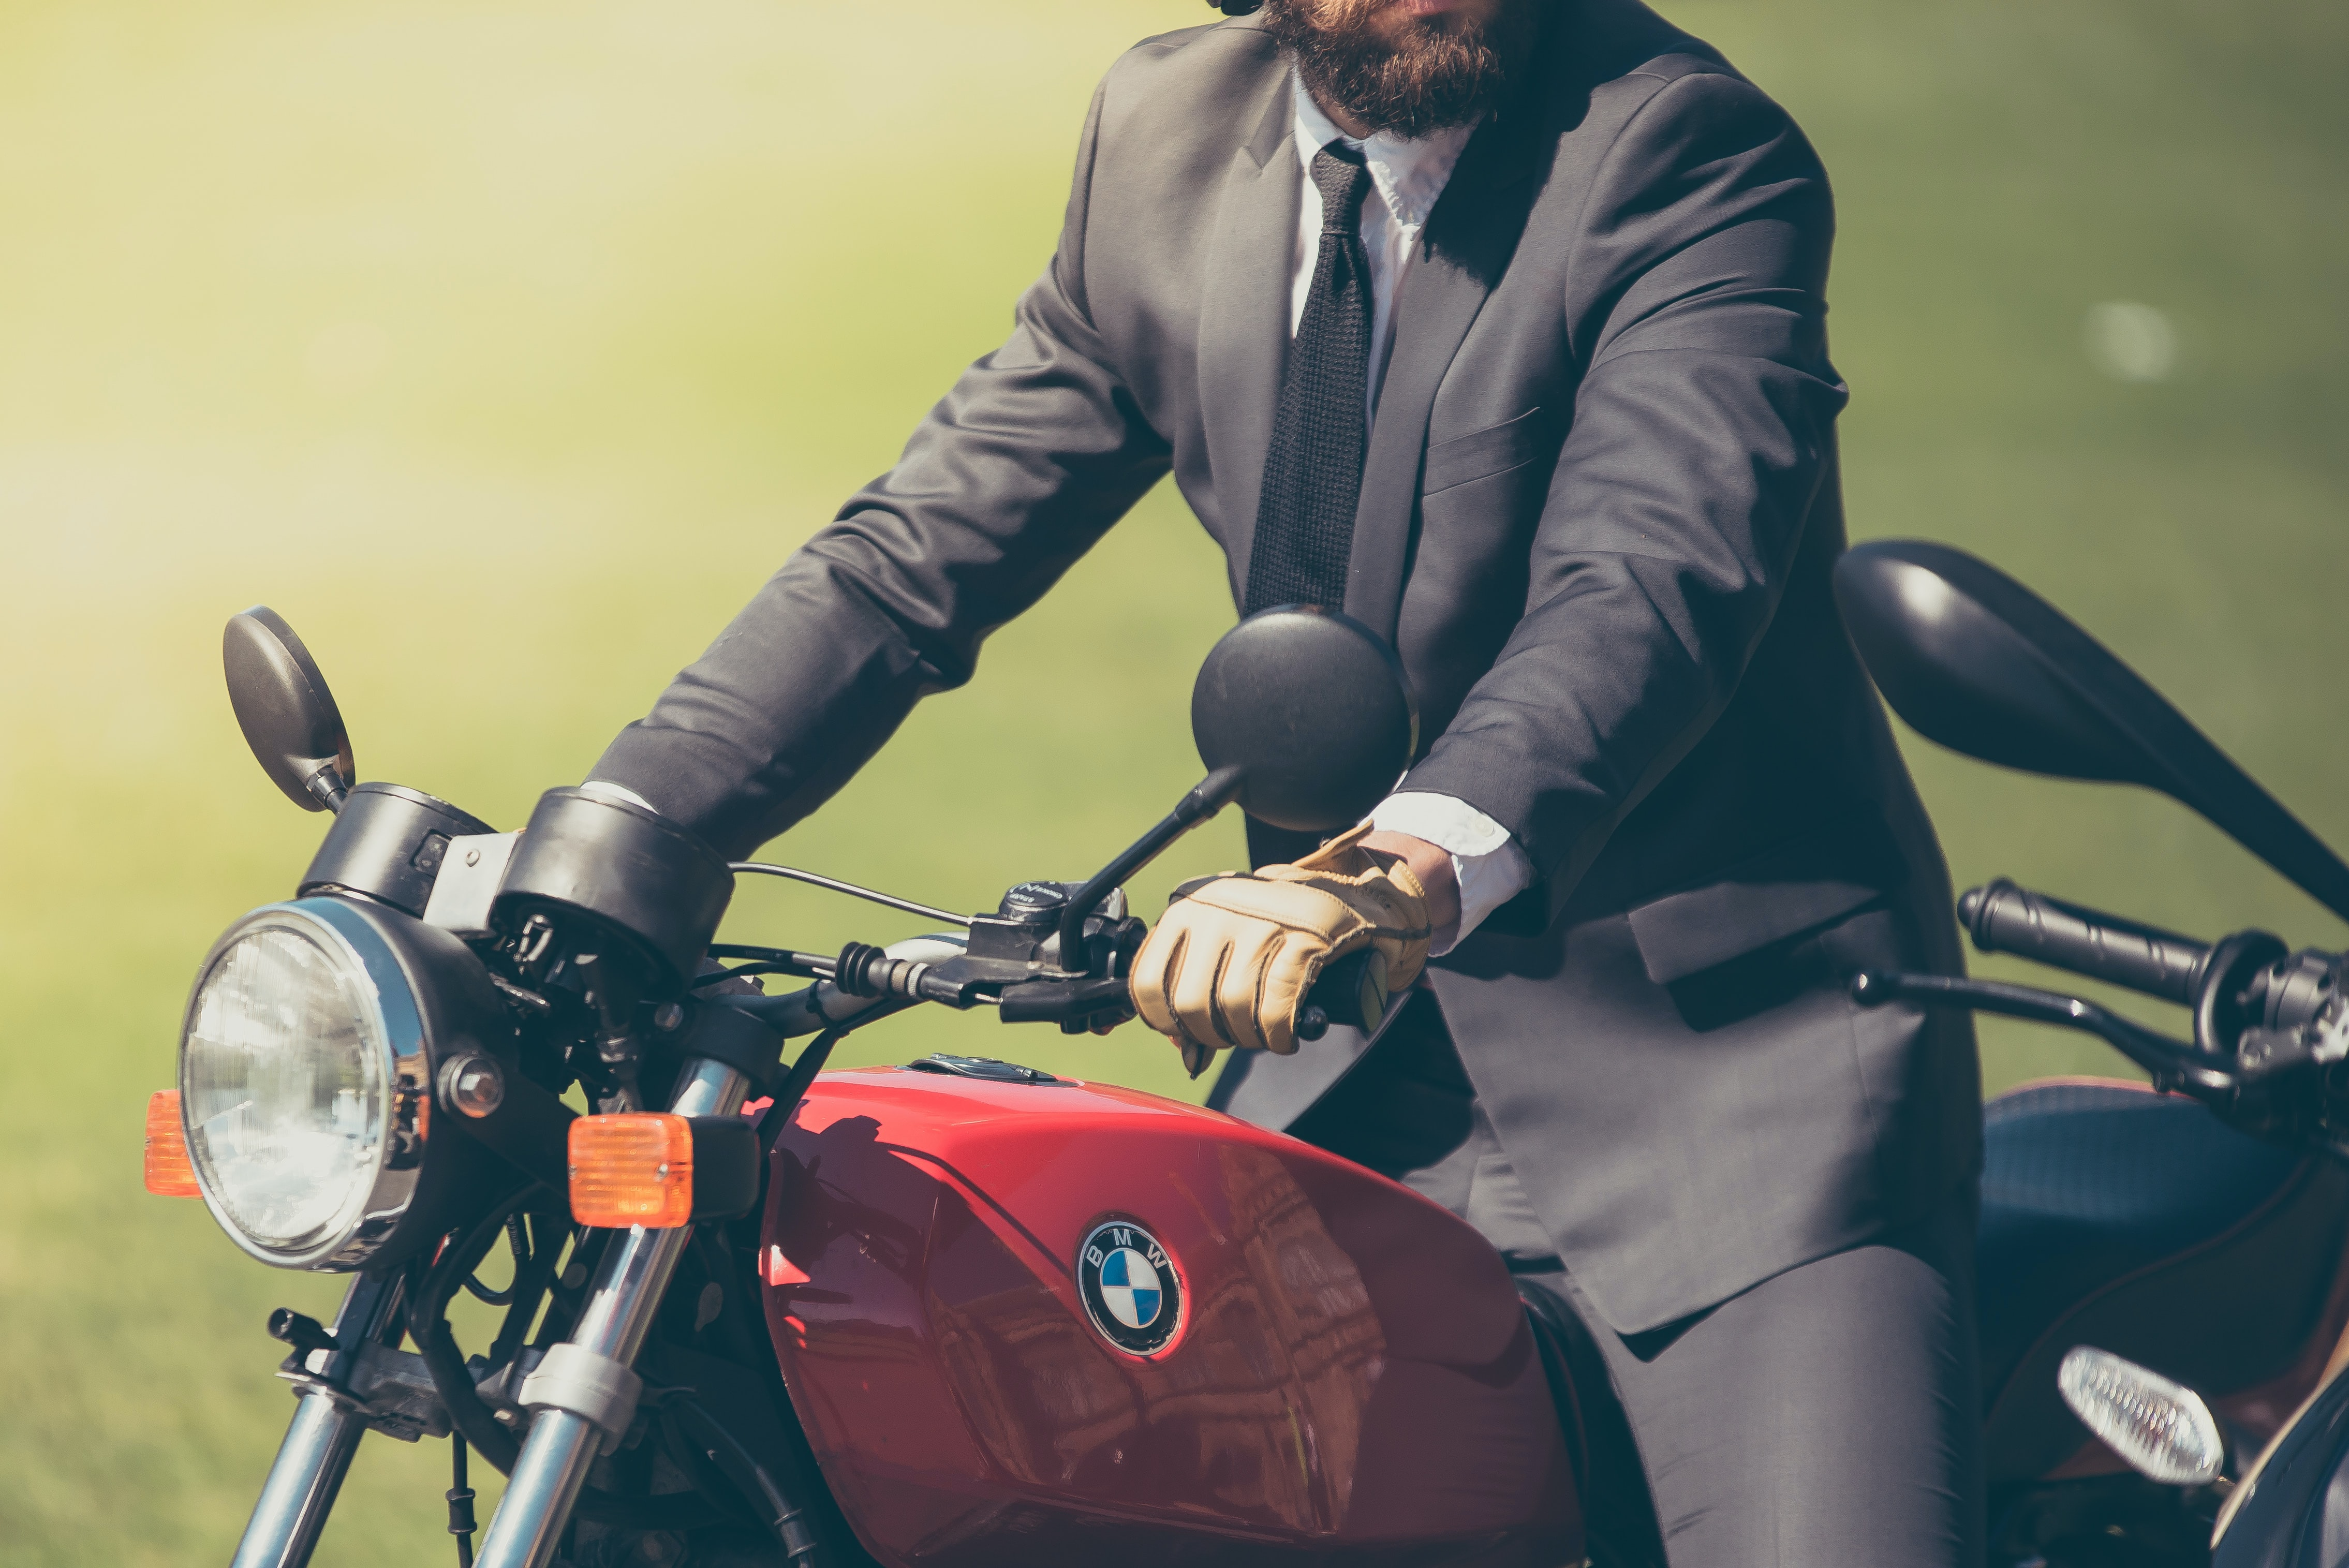 A man in a gray suit on a red BMW motorcycle